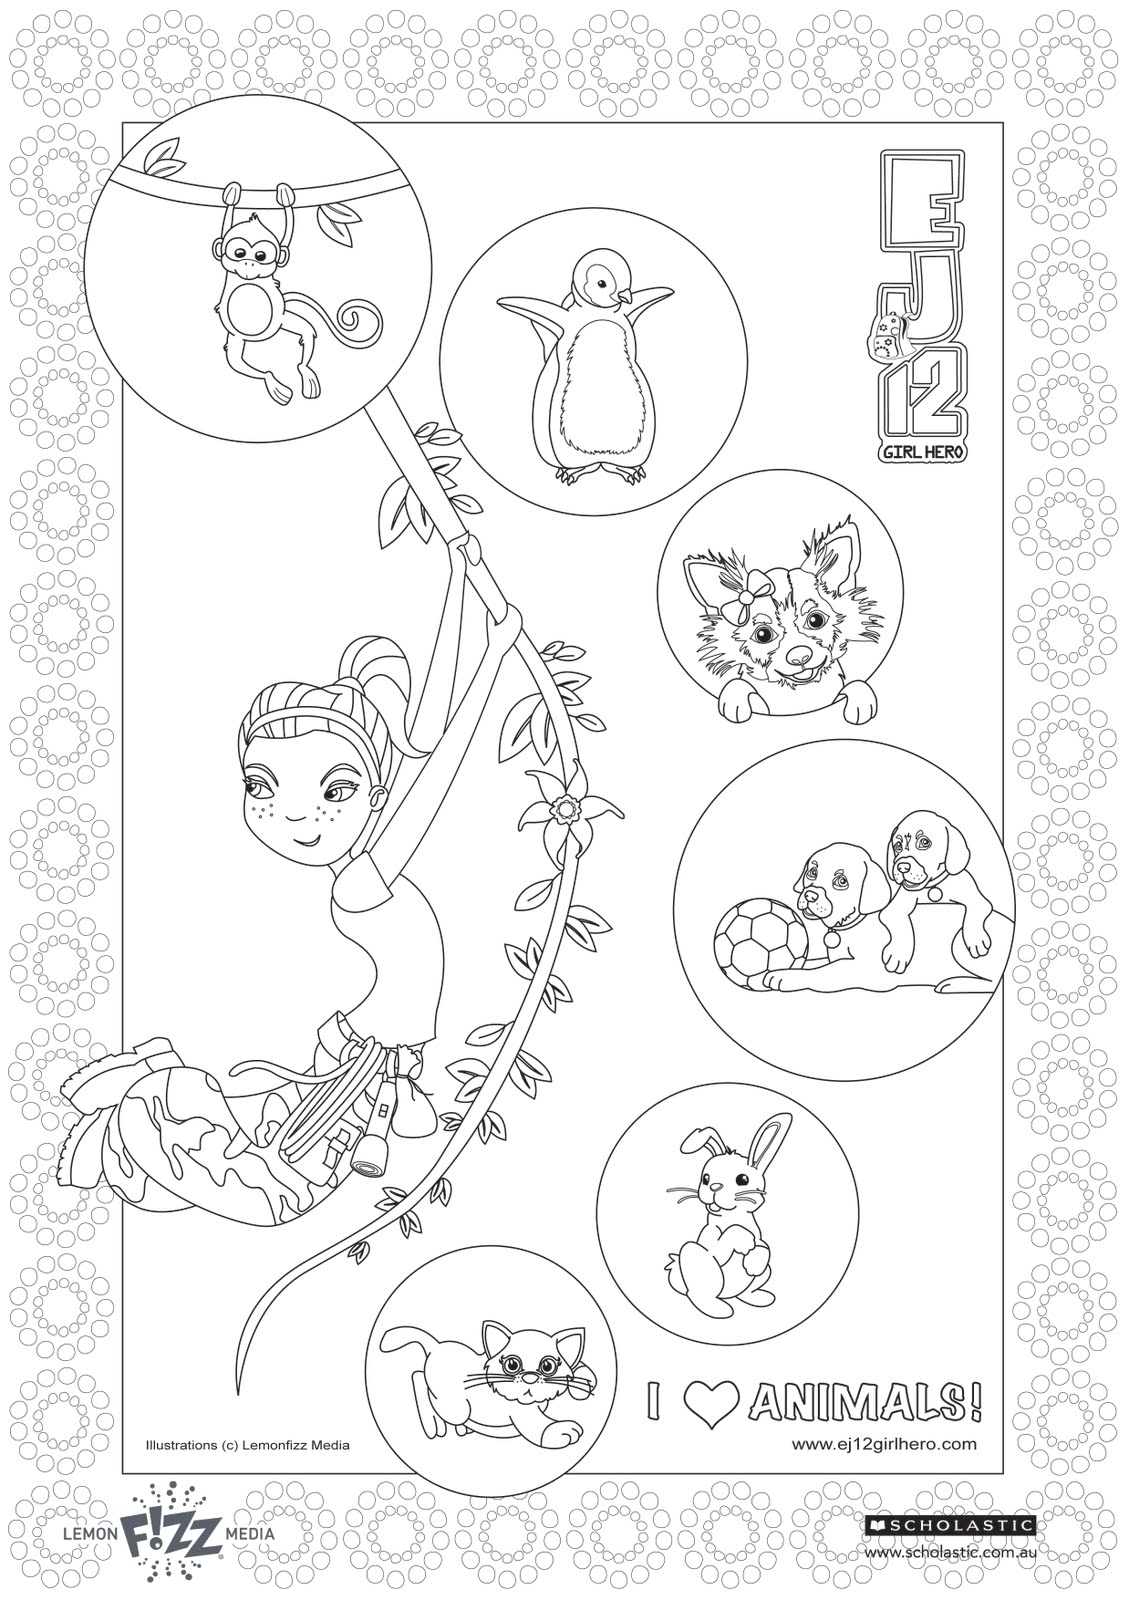 Free Netball Positions Coloring Pages Sketch Coloring Page